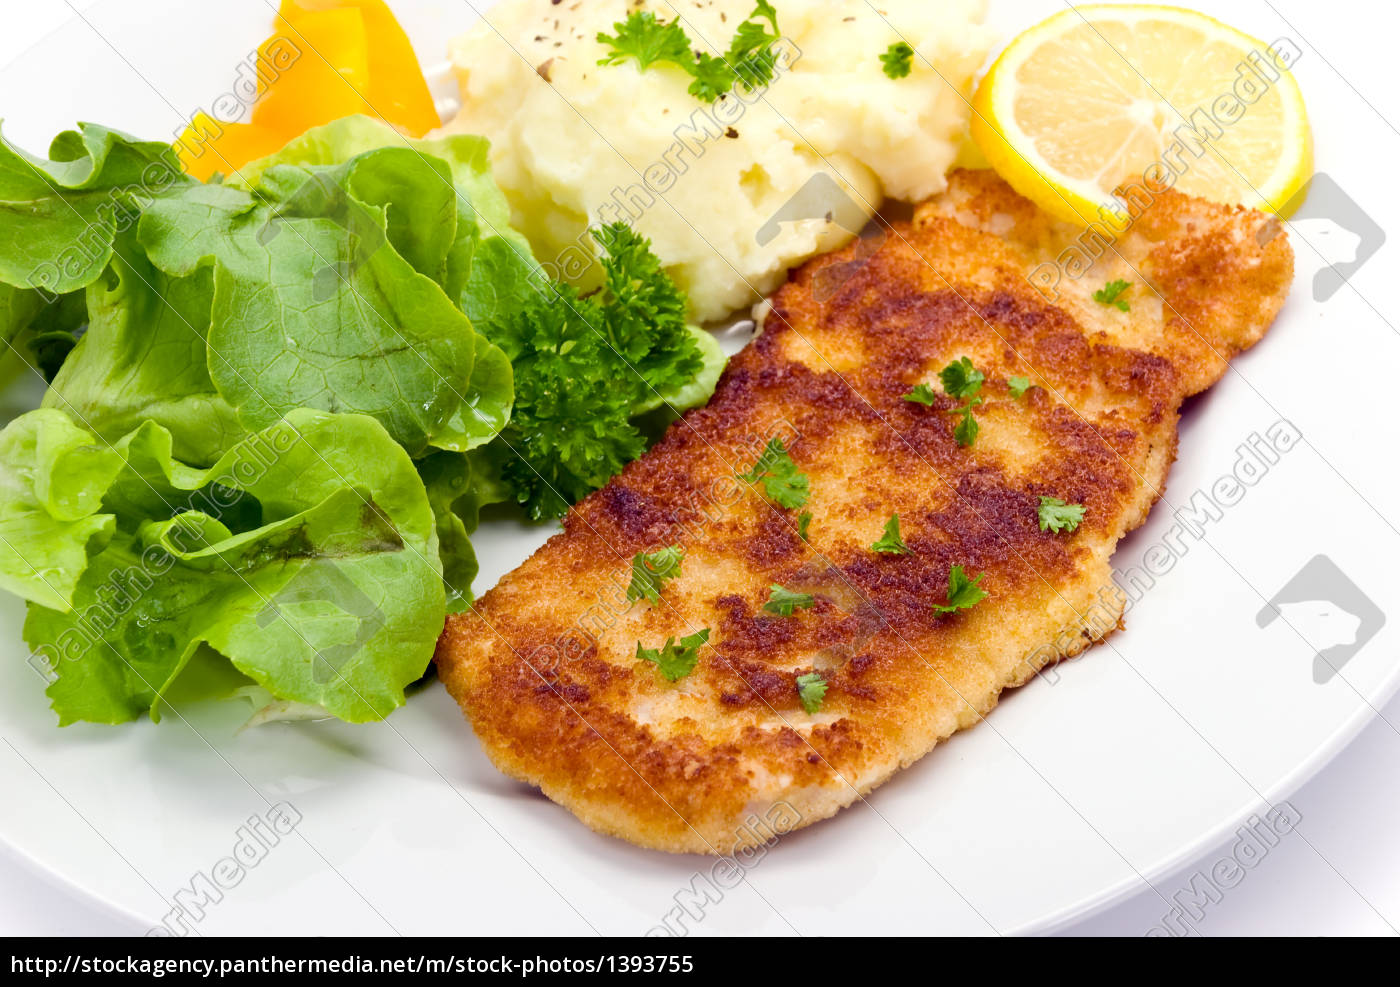 schnitzel, -paned, with, salad - 1393755